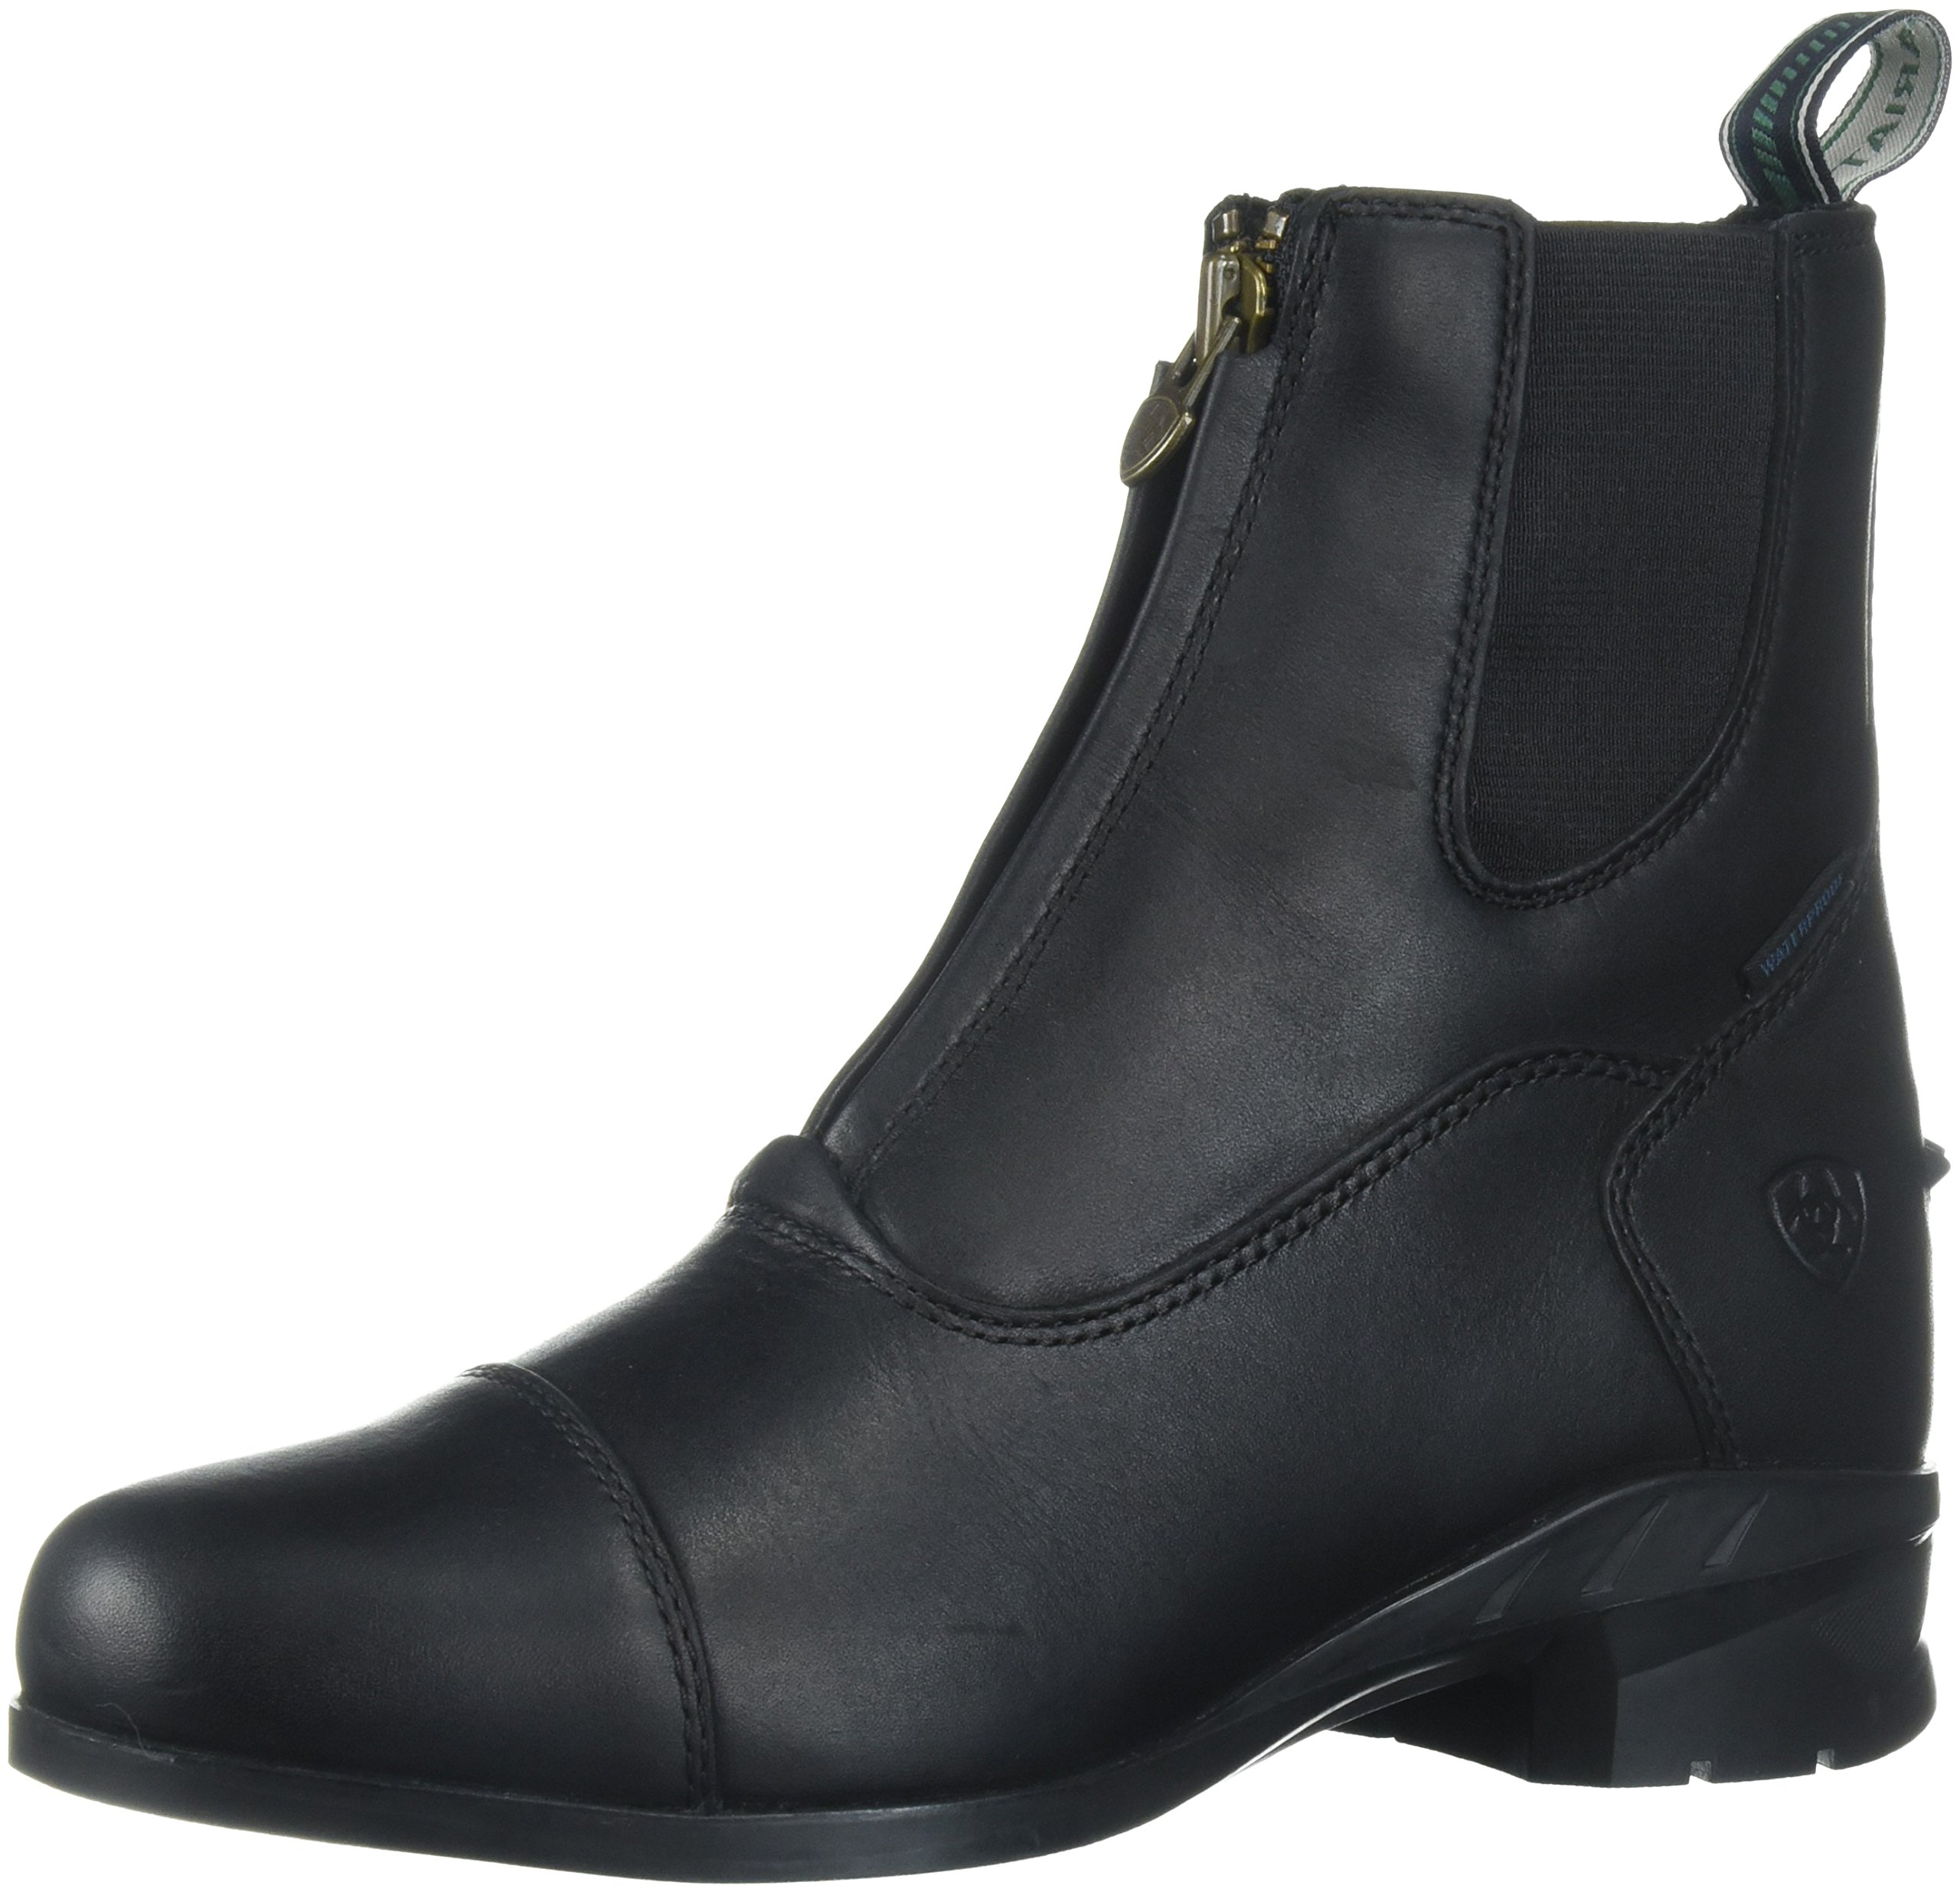 Ariat Women's Heritage Iv Zip H2O Work Boot, Black, 8.5 B US